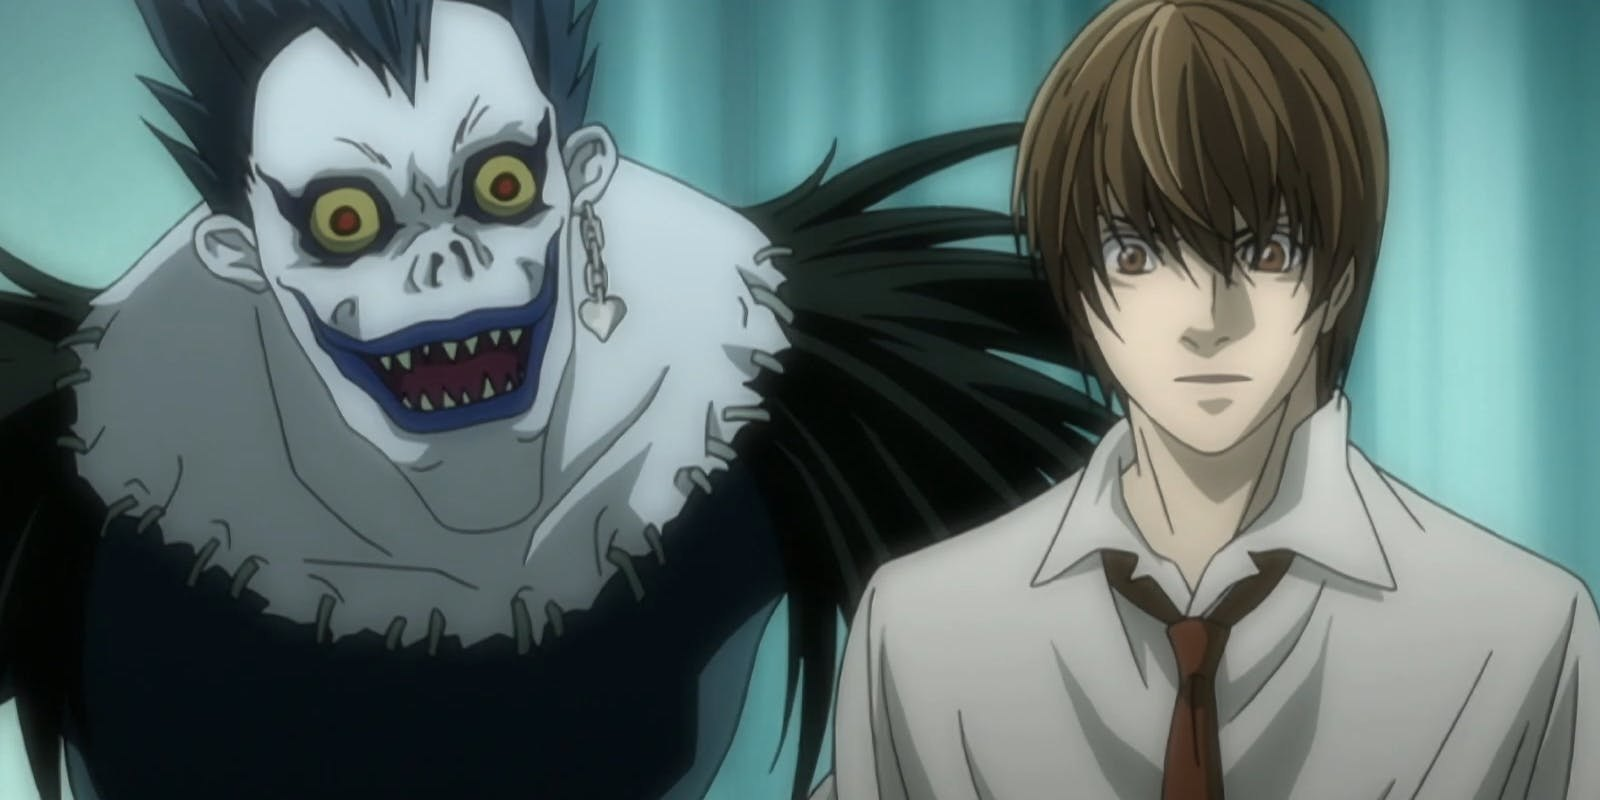 Death note is a damn good thriller genre anime the plot focuses on a special notebook which is known as the death note the book has a special ability